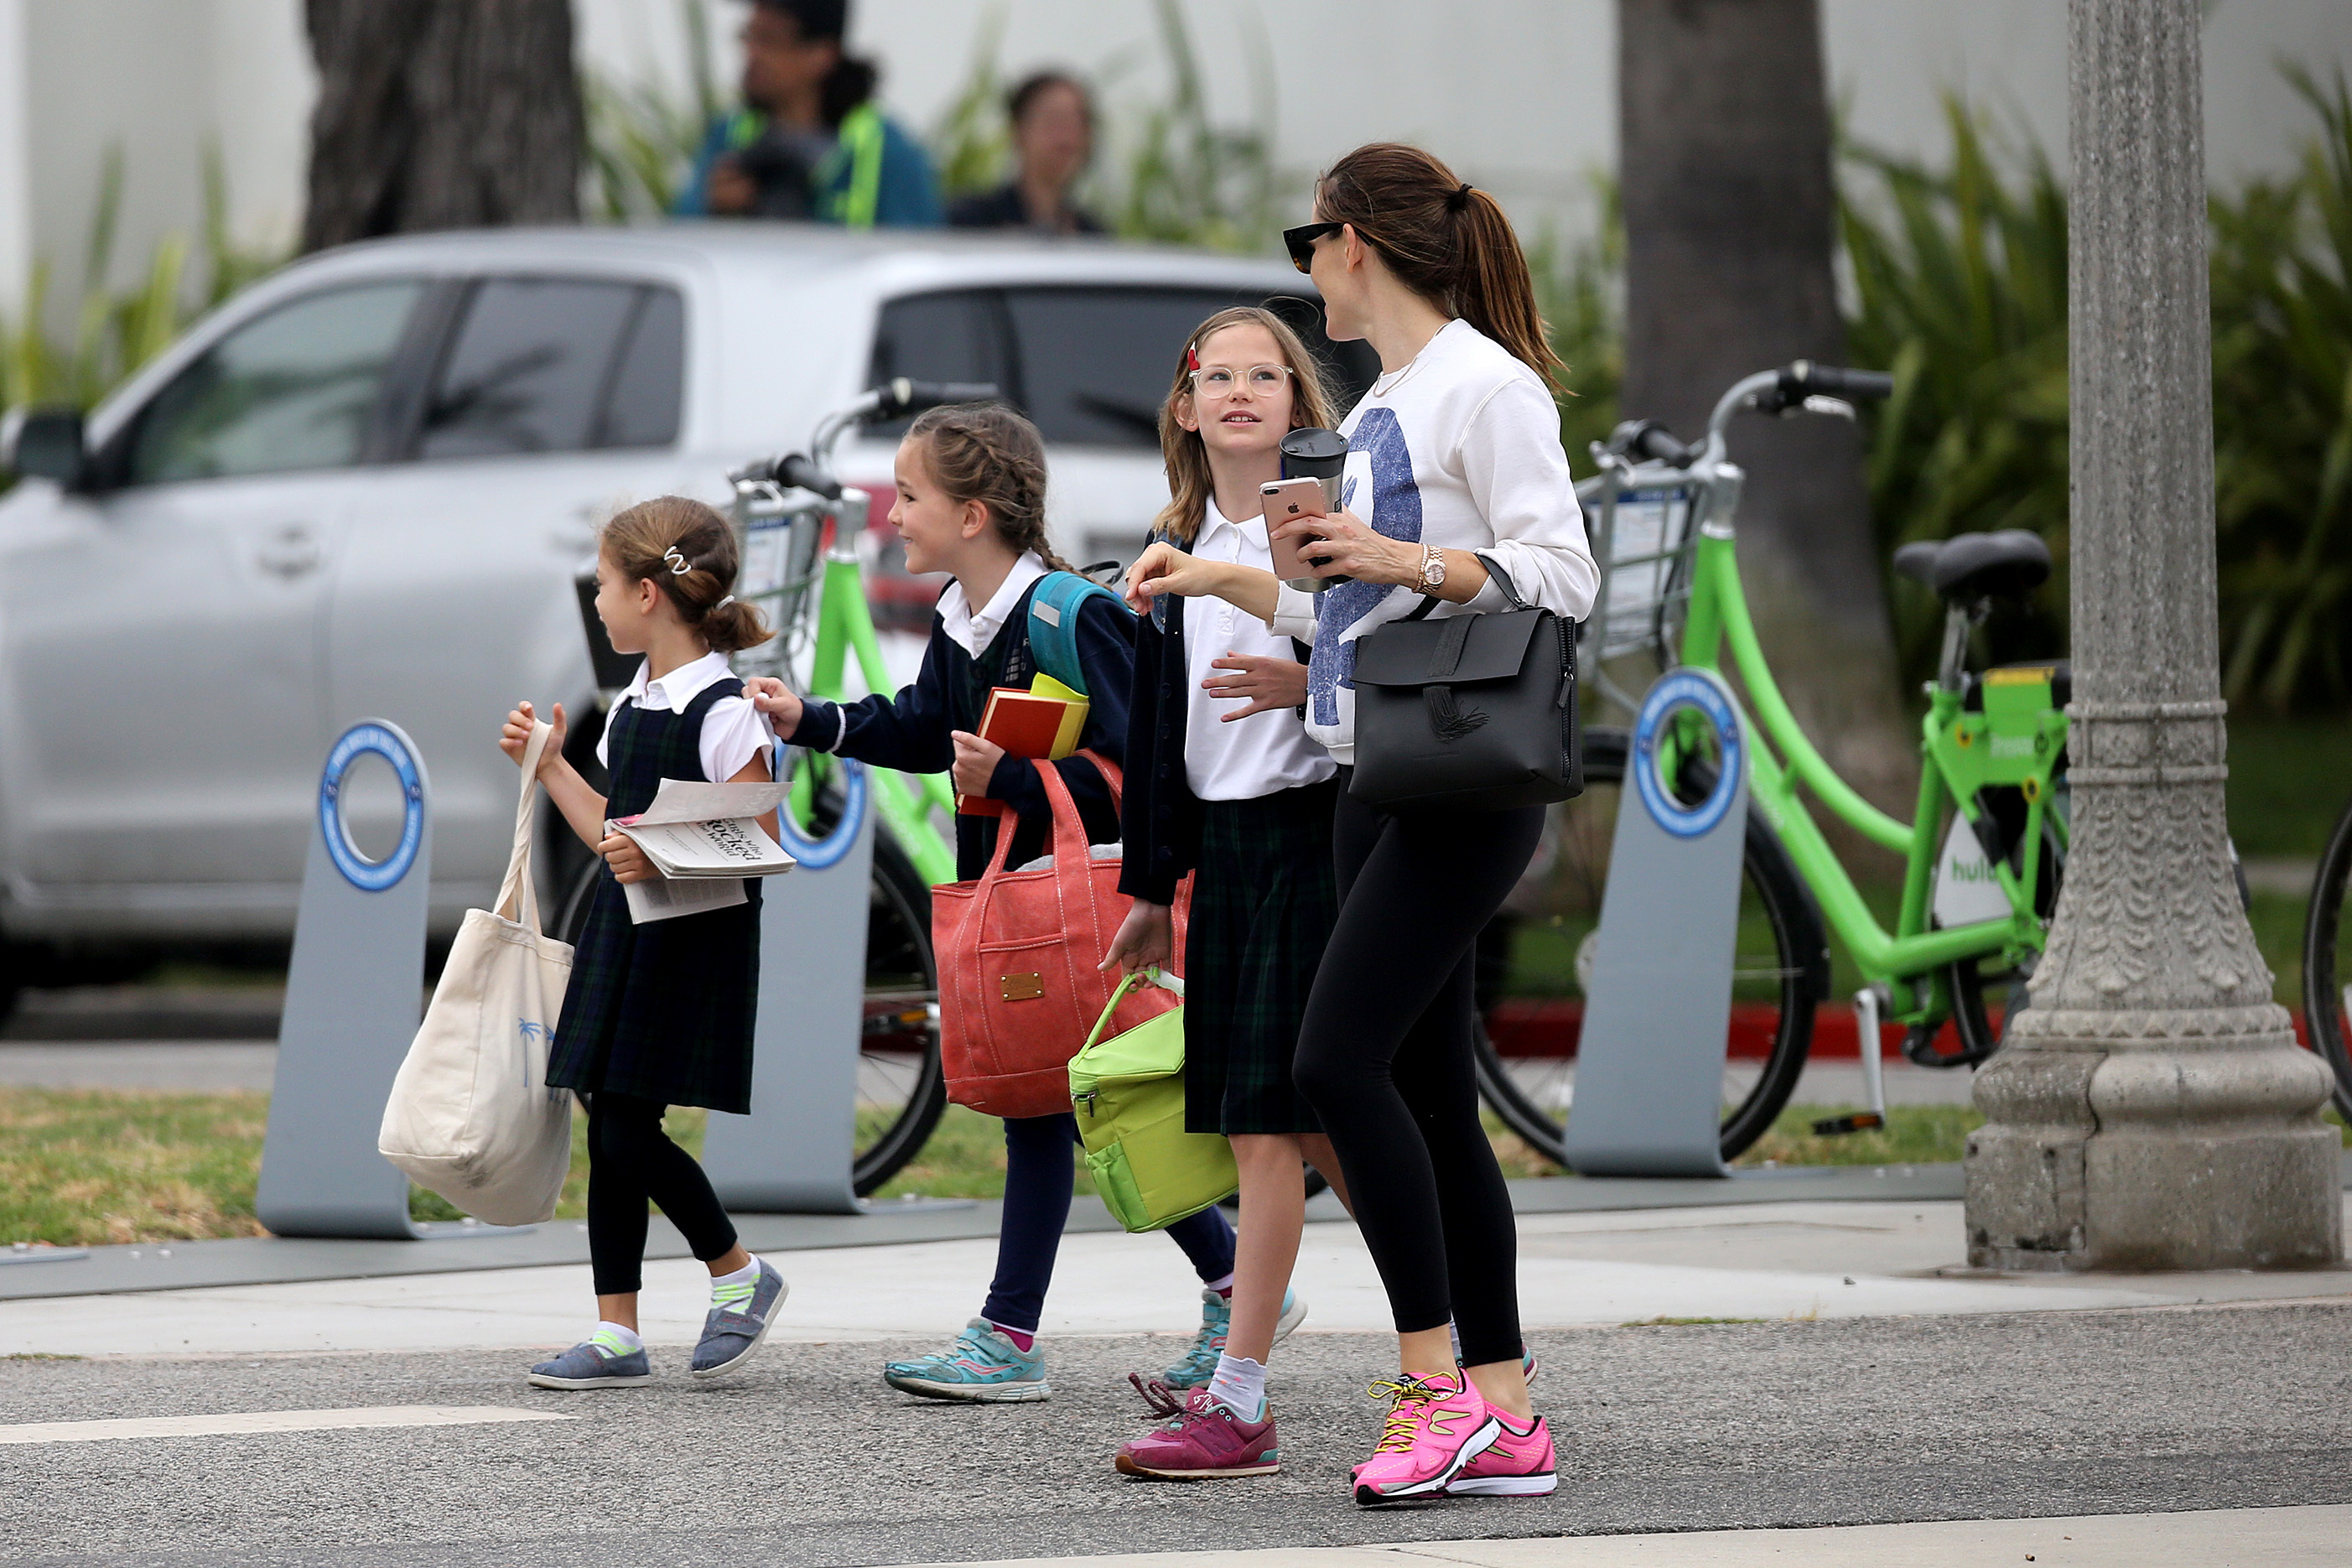 Jennifer Garner got a tender look from her daughters Violet and Seraphina while walking them to school on June 2, 2017.